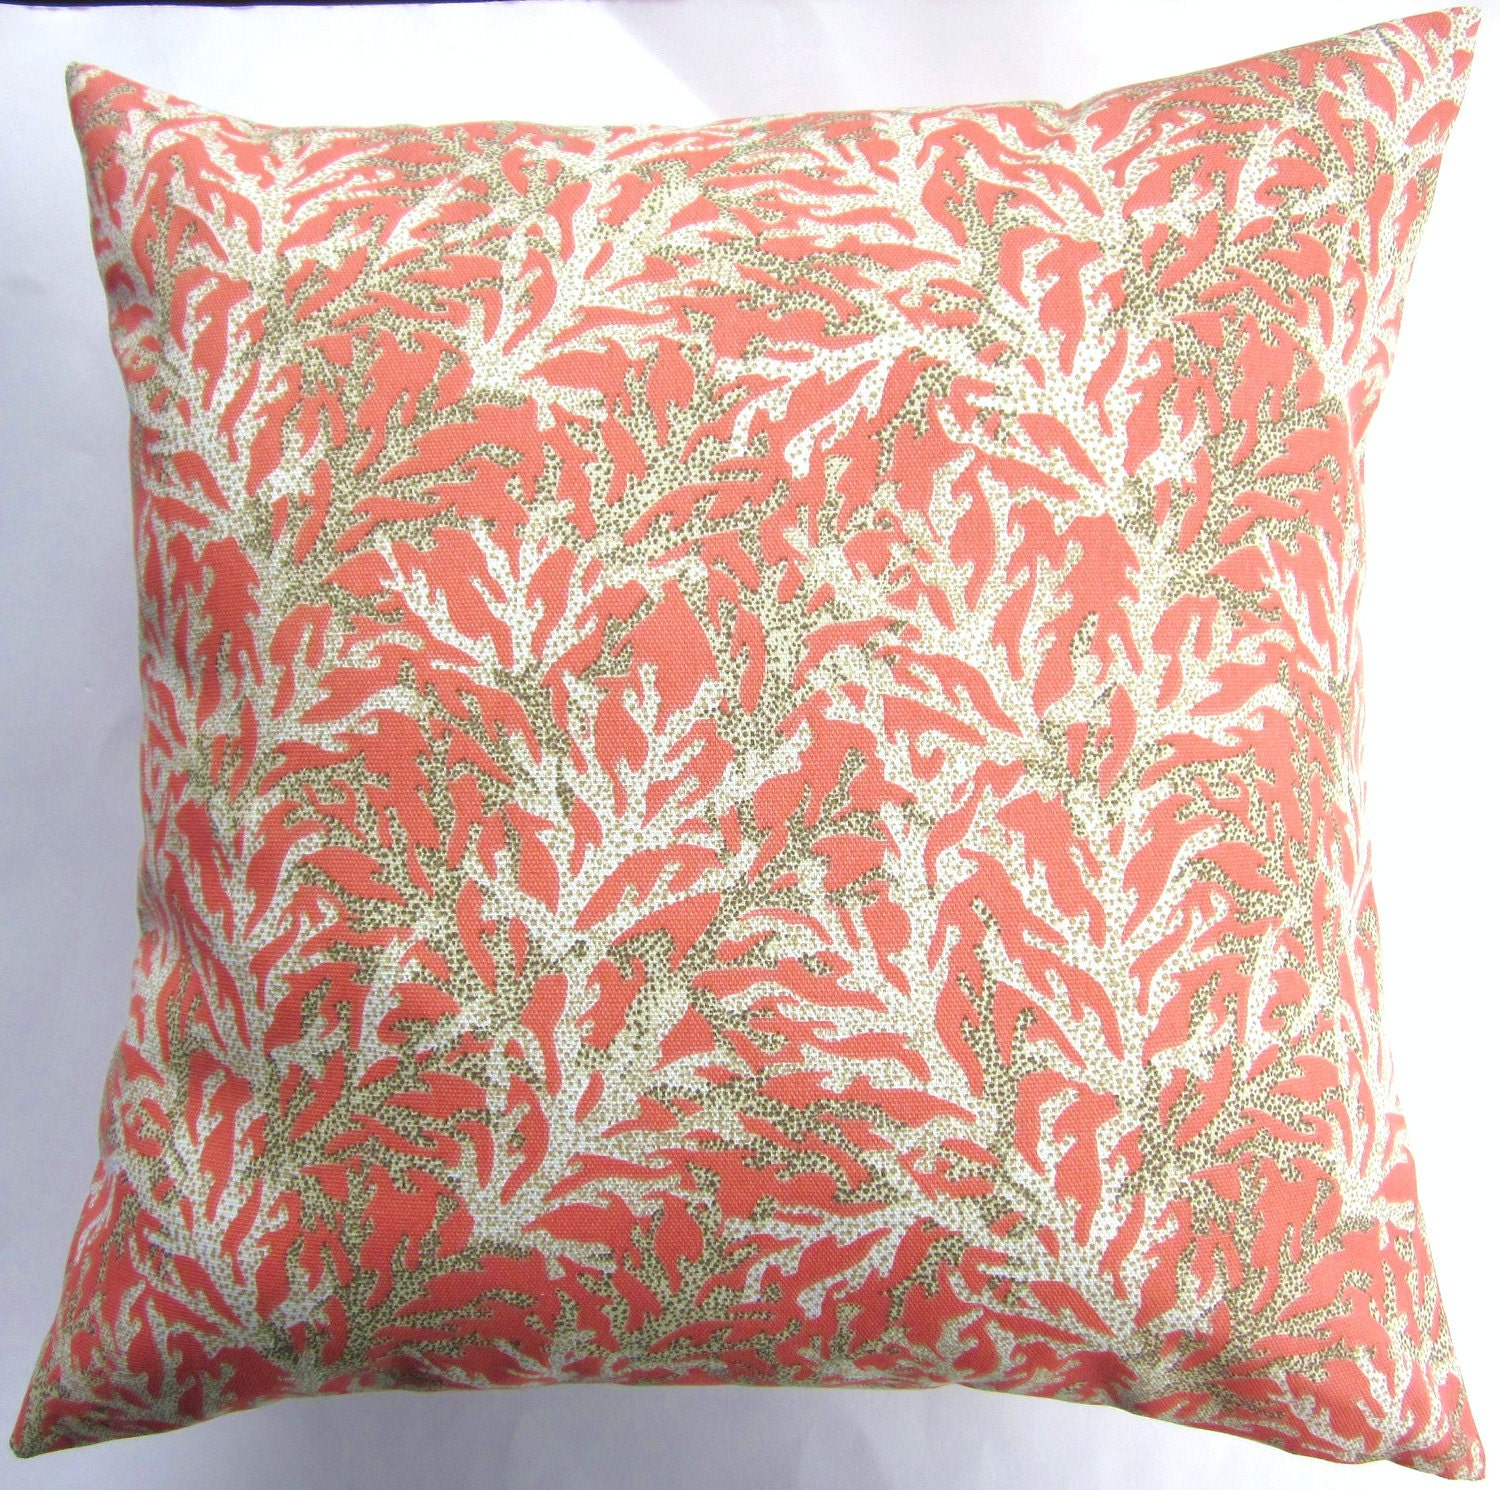 Throw Pillows With Coral : Coral Throw Pillow Cover Coral Reef Indoor by sassypillows